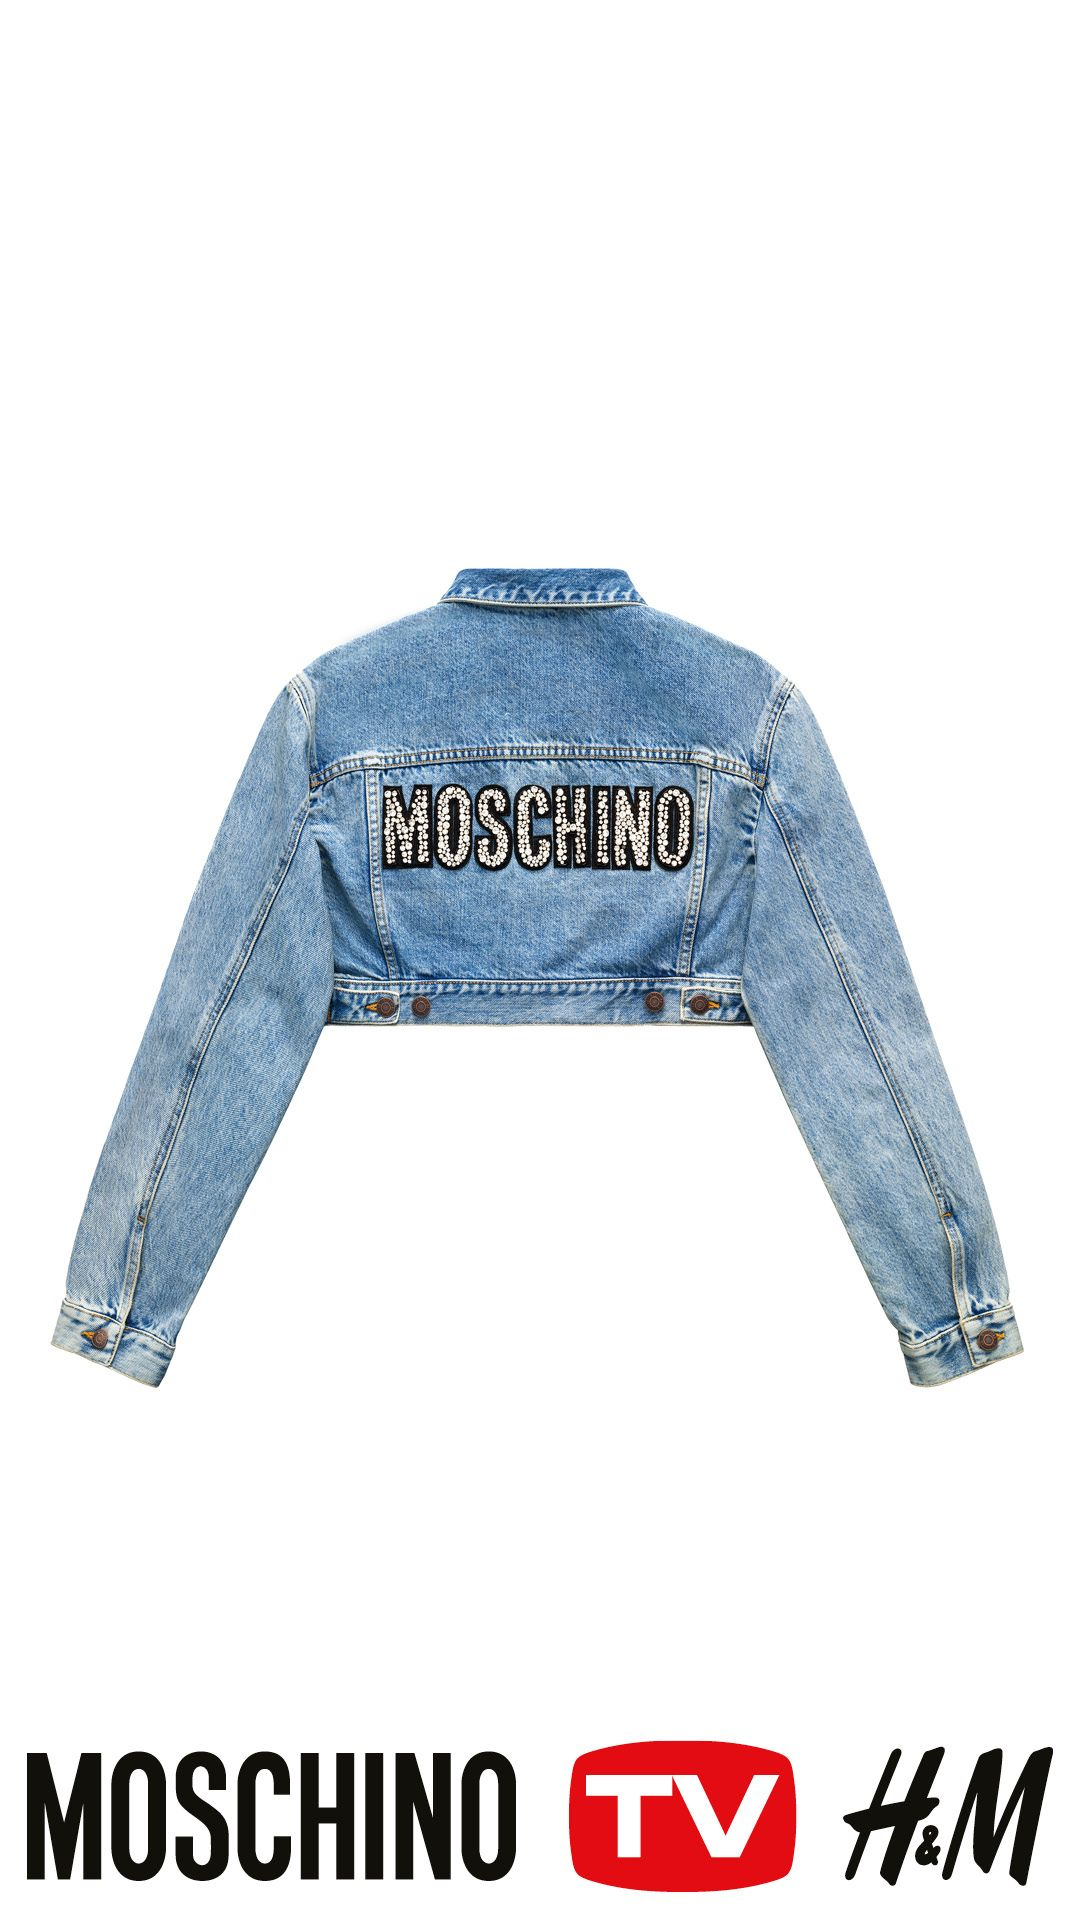 H&m Online Questionnaire Moschino Tv H Andm Features Bold Streetwear Inspired